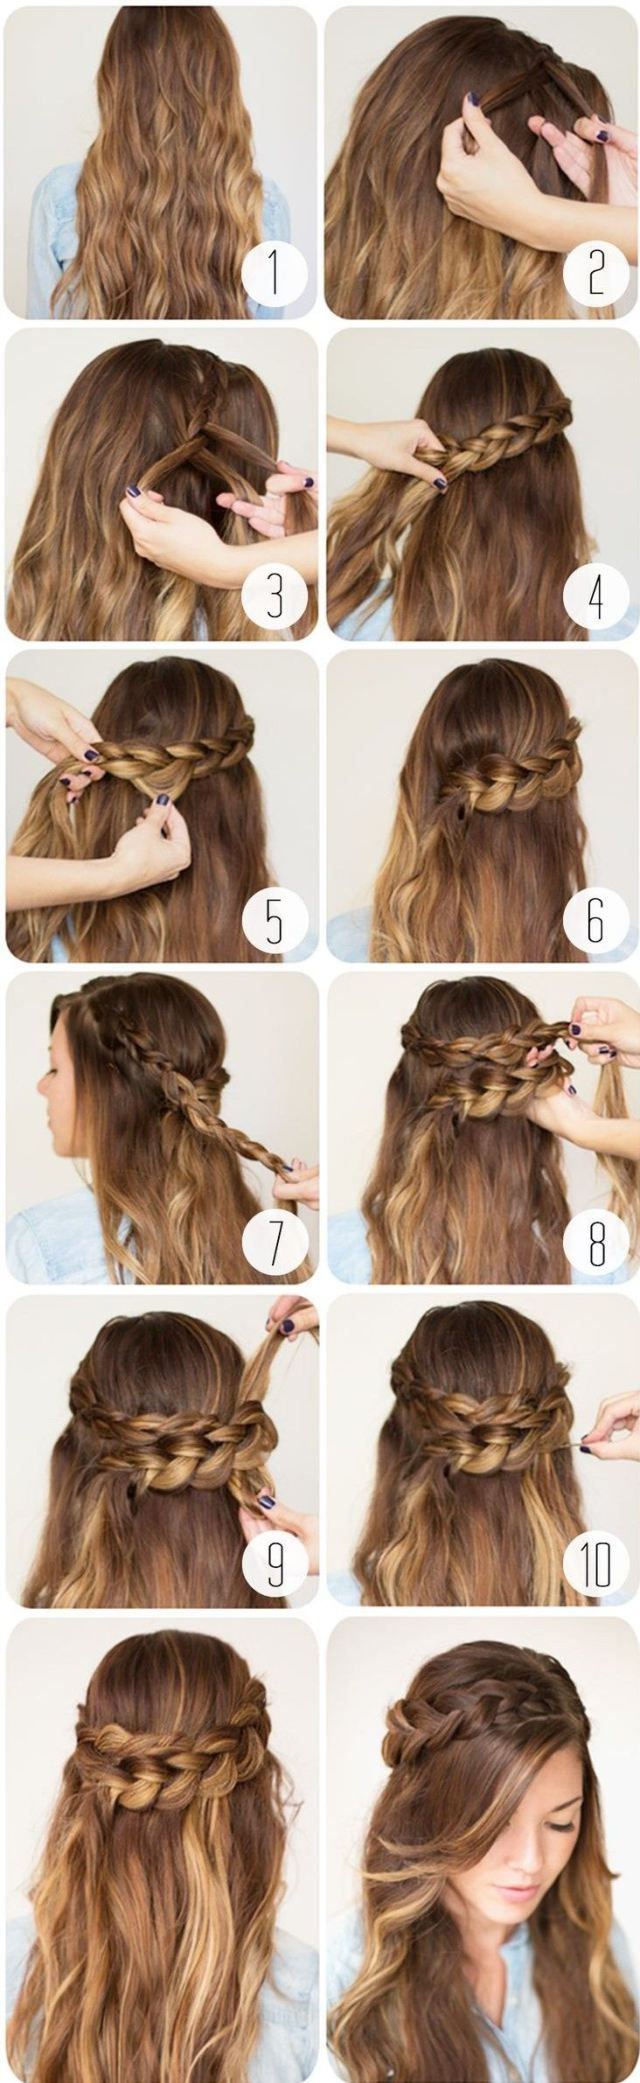 Fantastic 1000 Ideas About Easy Braided Hairstyles On Pinterest Types Of Hairstyles For Women Draintrainus